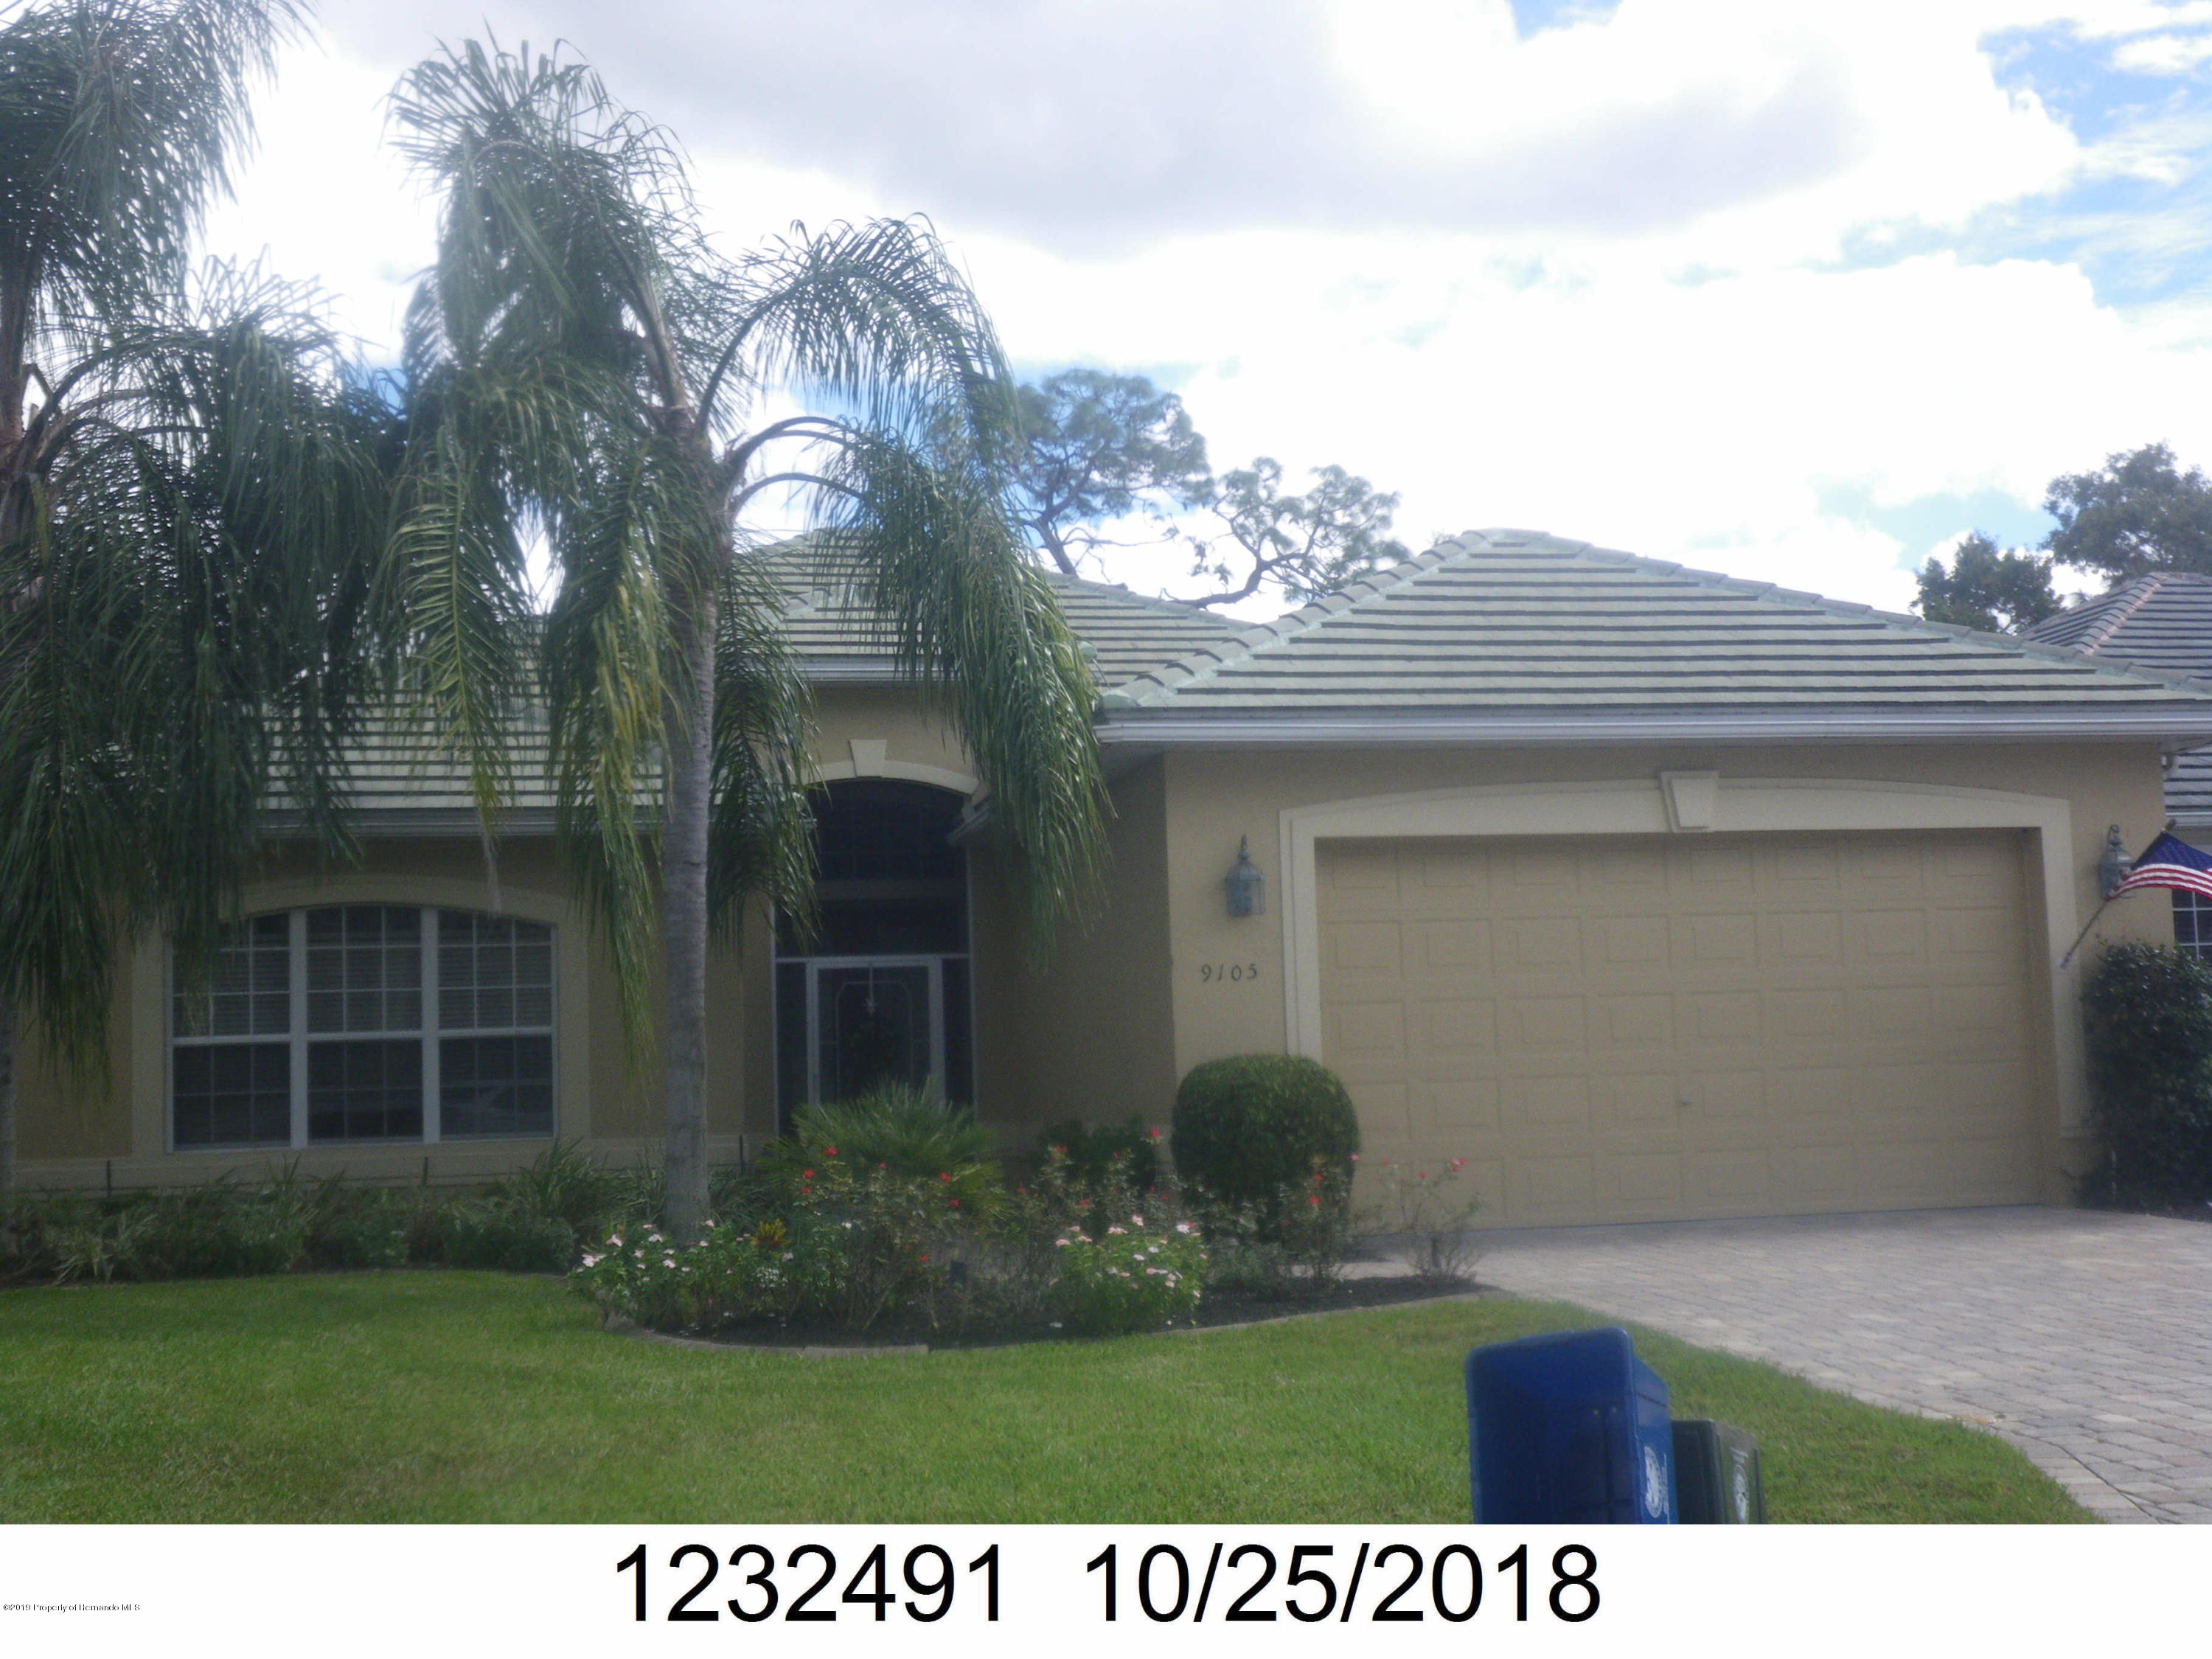 9105 Penelope Drive, Weeki Wachee, Florida 34613, 3 Bedrooms Bedrooms, ,2 BathroomsBathrooms,Residential,For Sale,Penelope,2206074